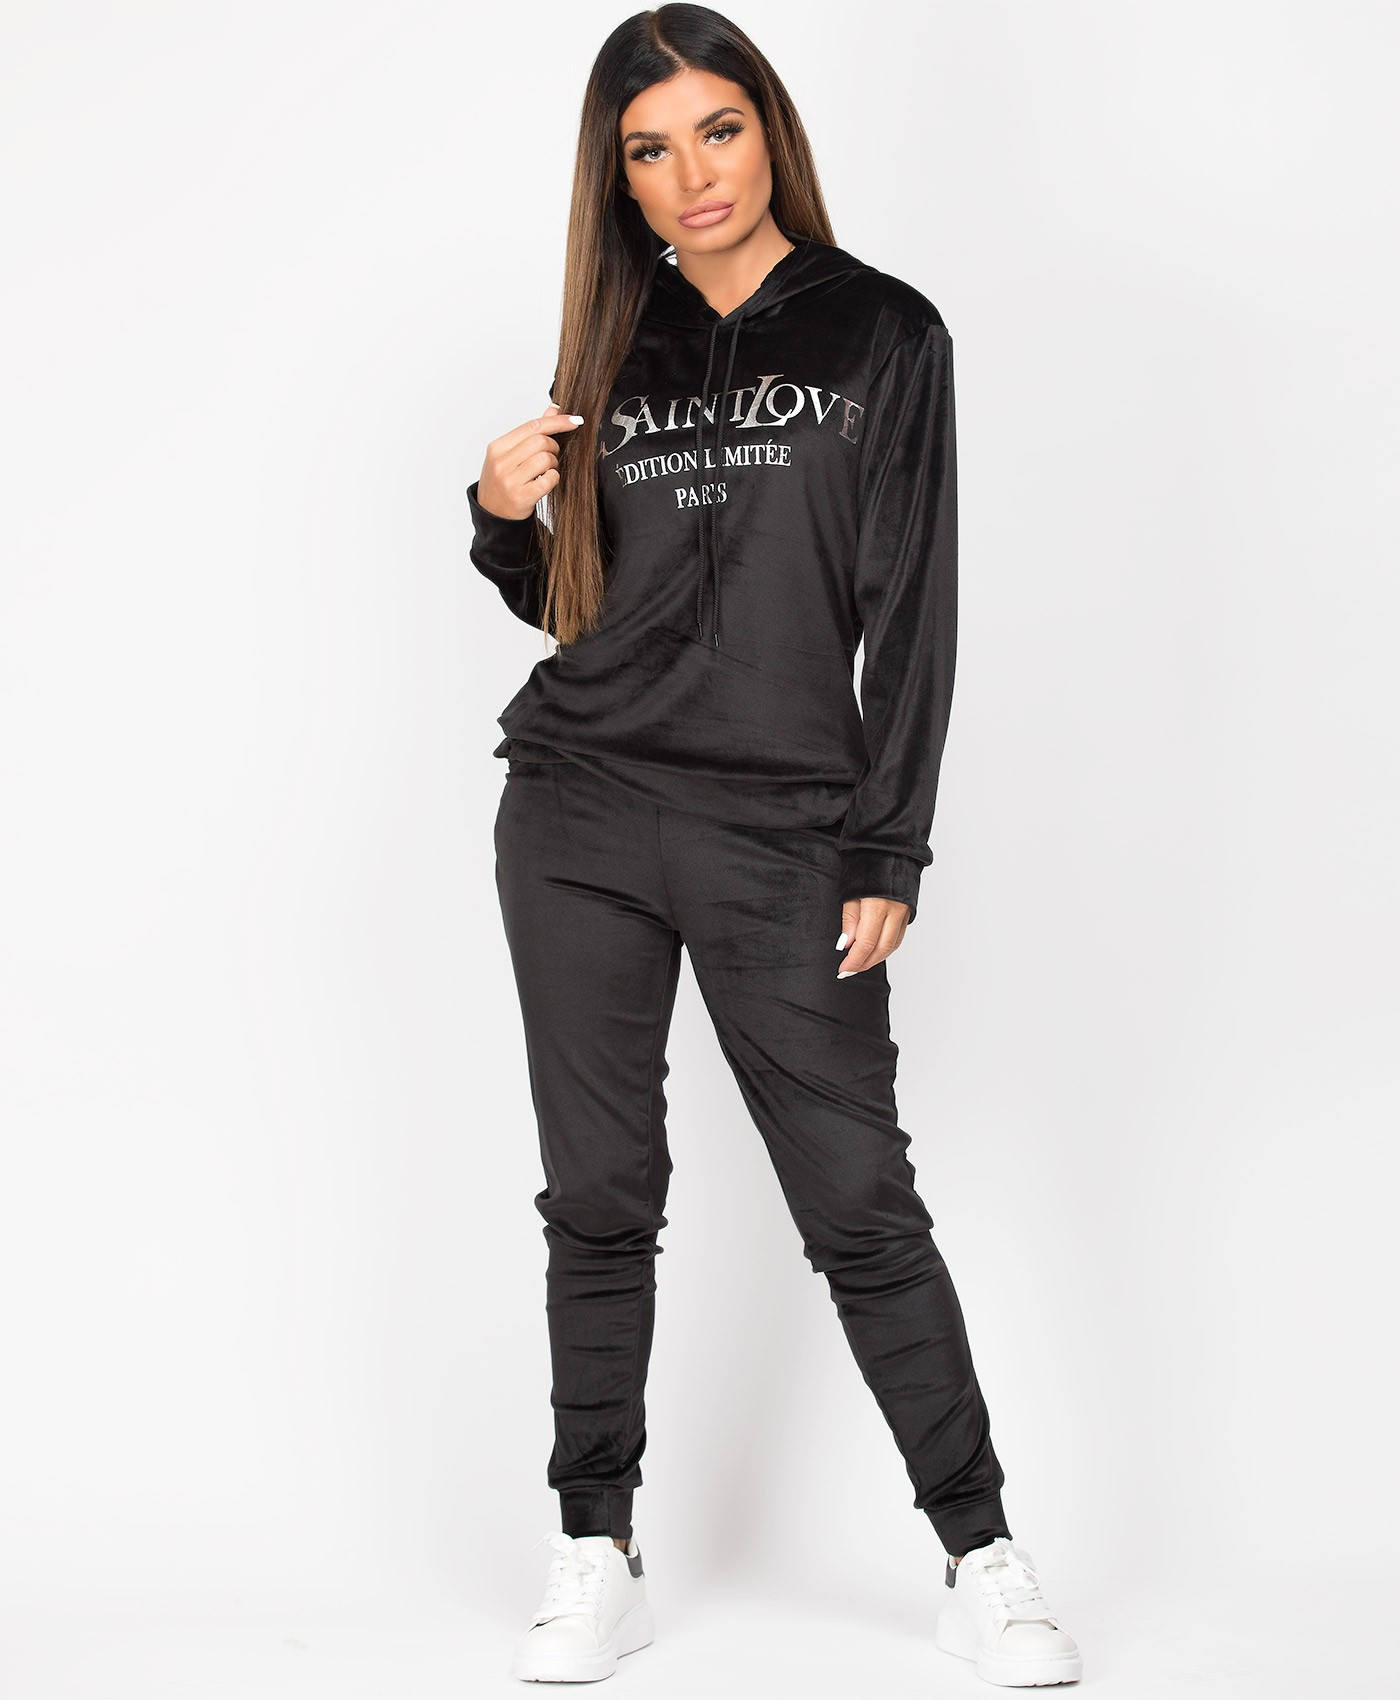 Black-Silver-Yes-Saint-Love-Velvet-Velour-Tracksuit-Loungewear-Set-1